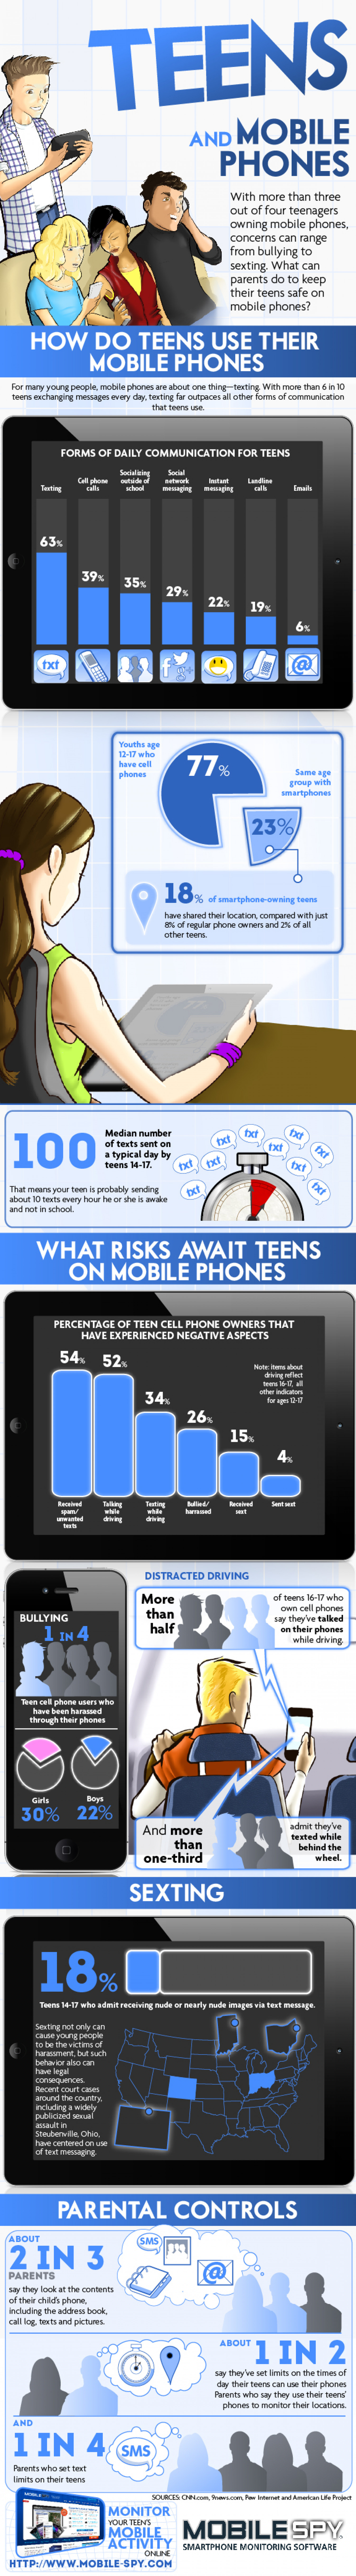 Teens and Mobile Phones Infographic